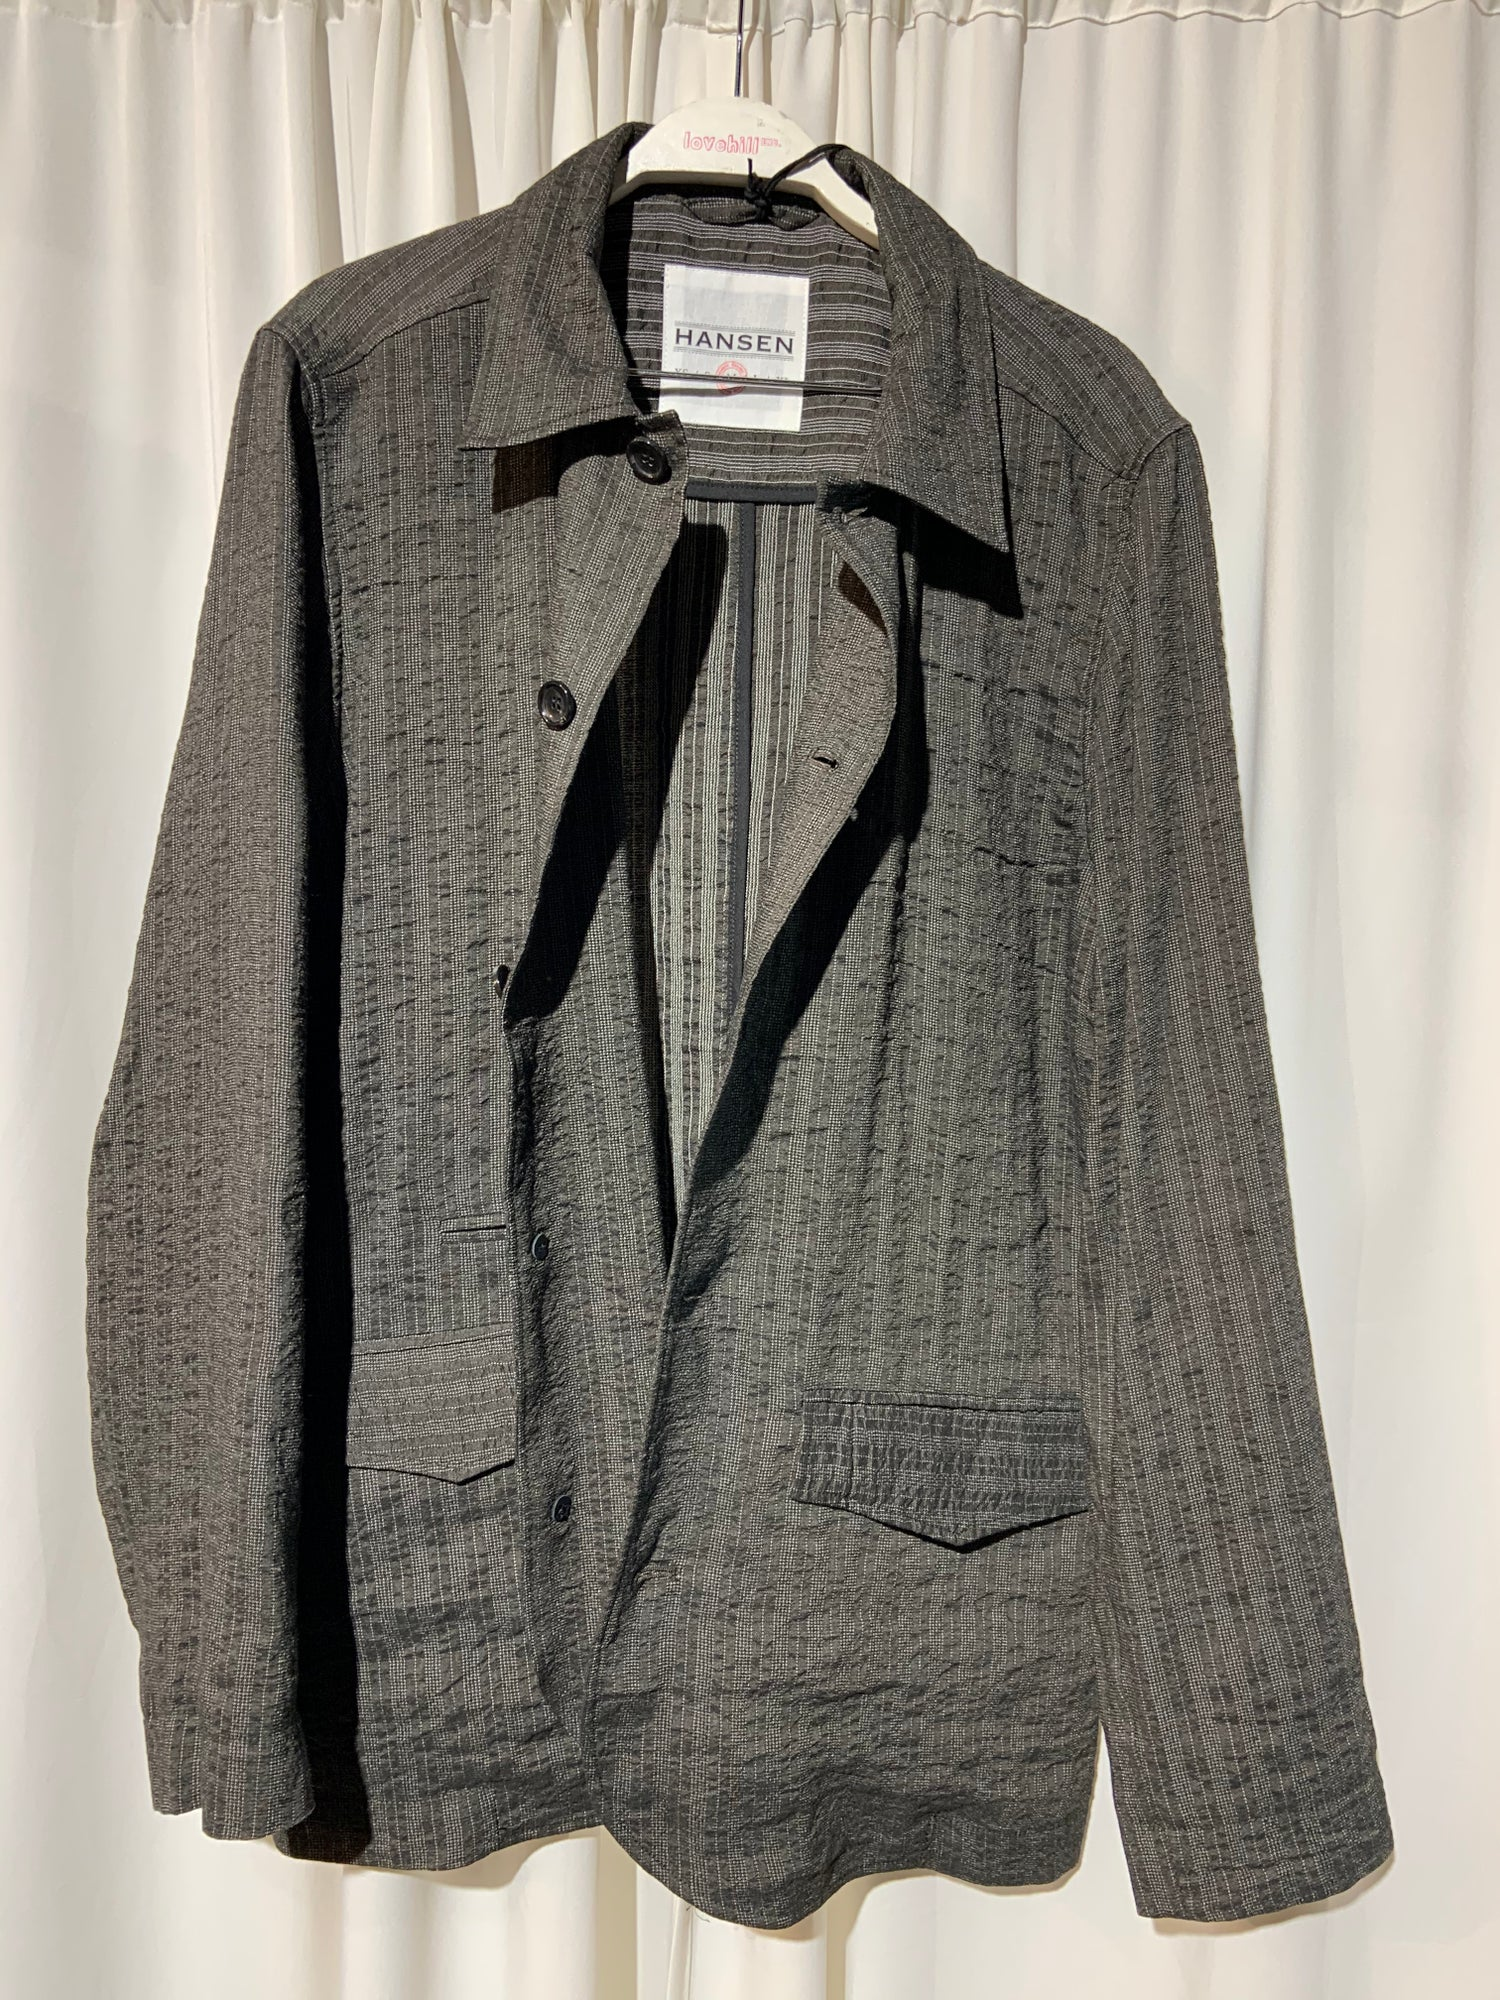 Image of HANSEN GARMENTS Blazer Jacket taupe stripes